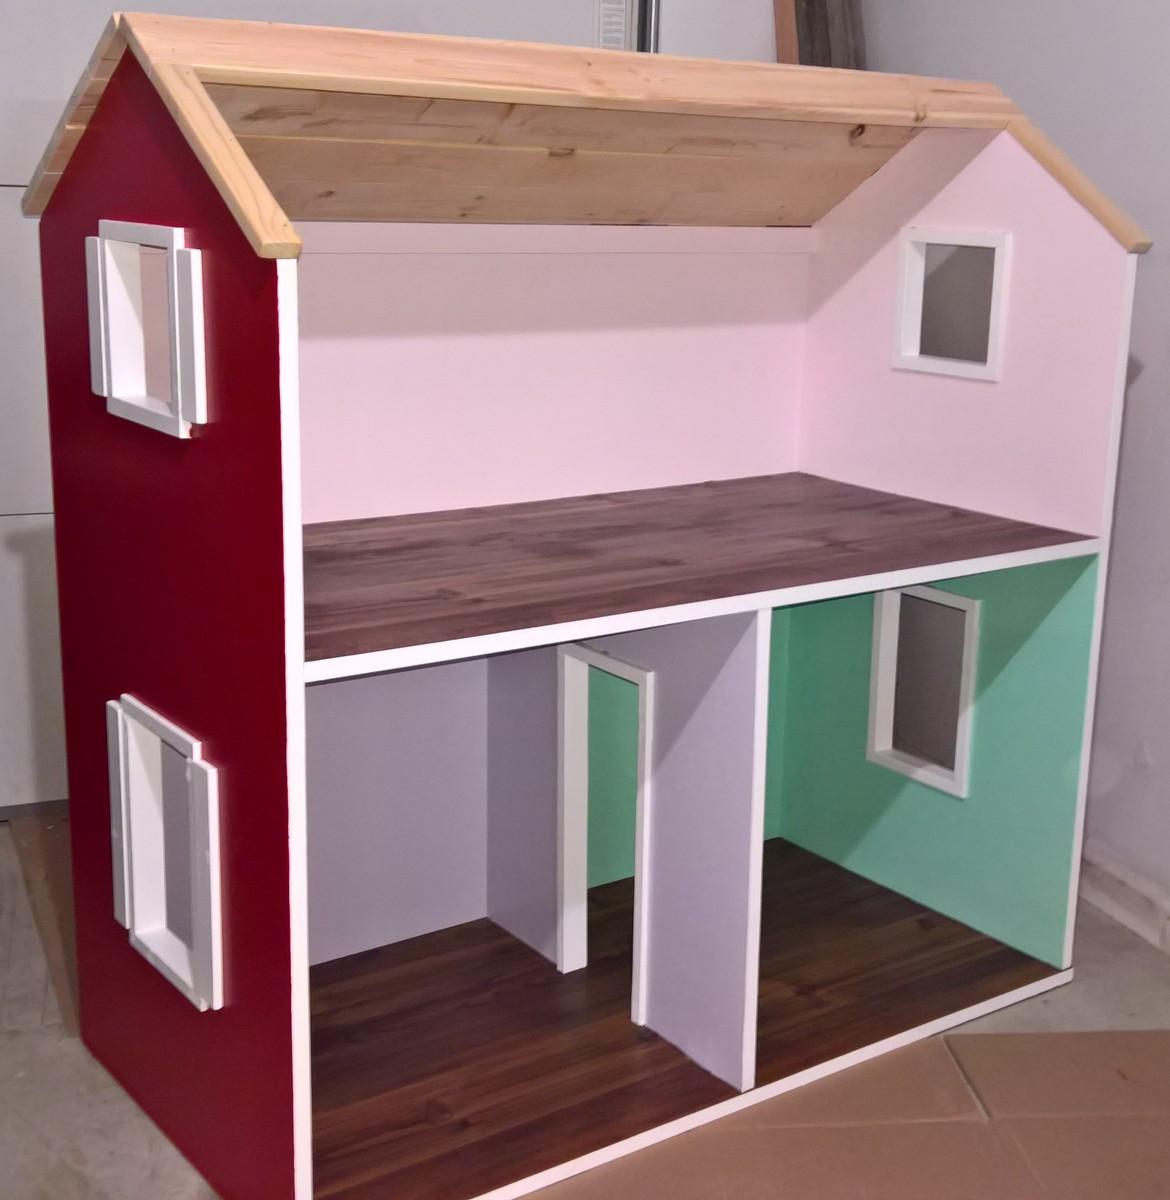 Best ideas about DIY Dollhouse Plans . Save or Pin Ana White Now.